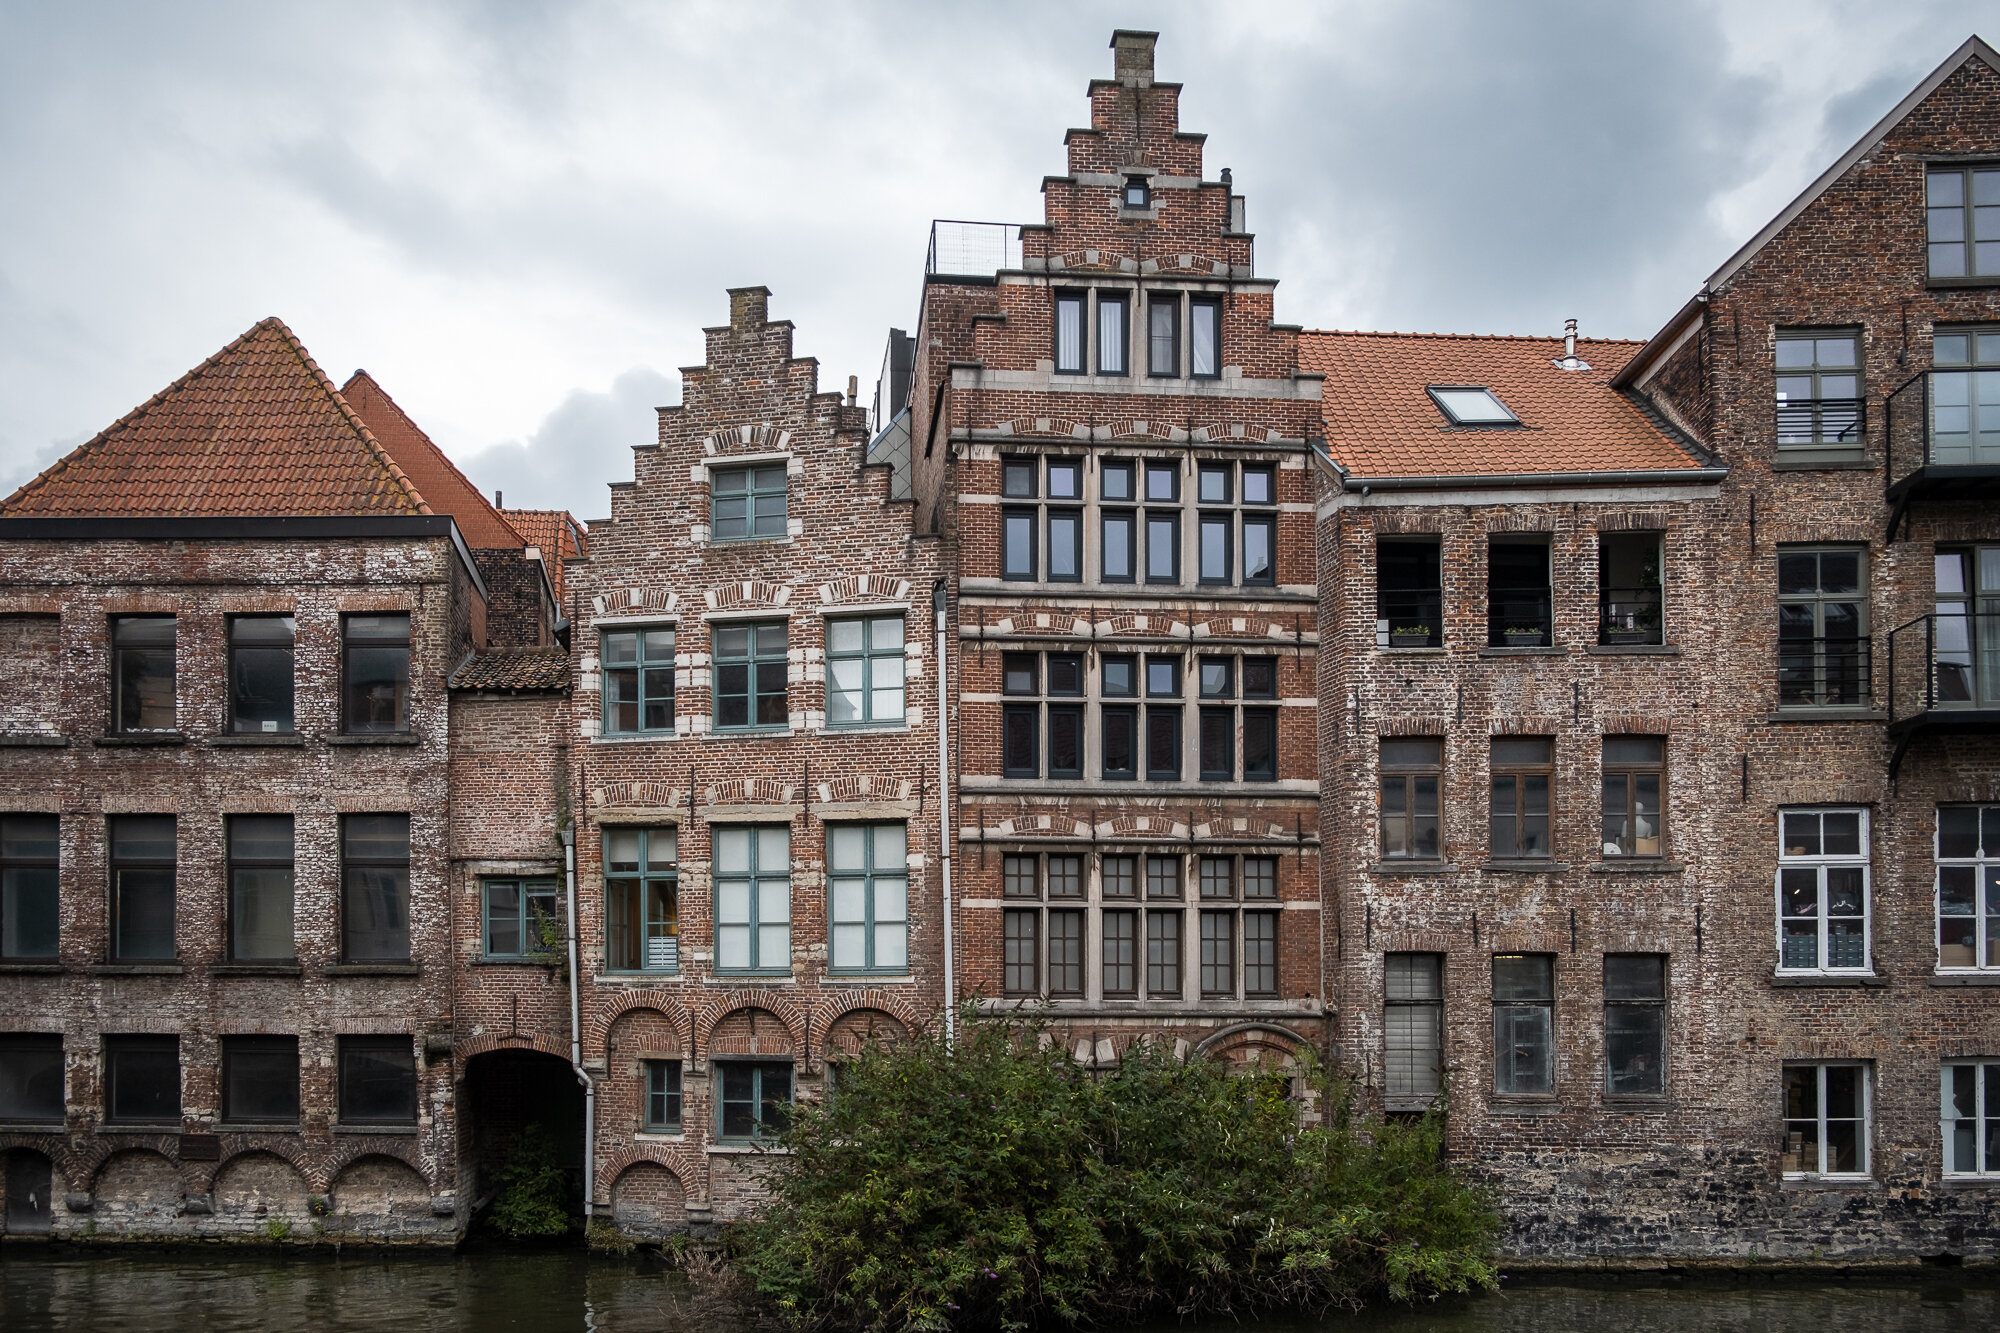 Buildings that line the River Leie